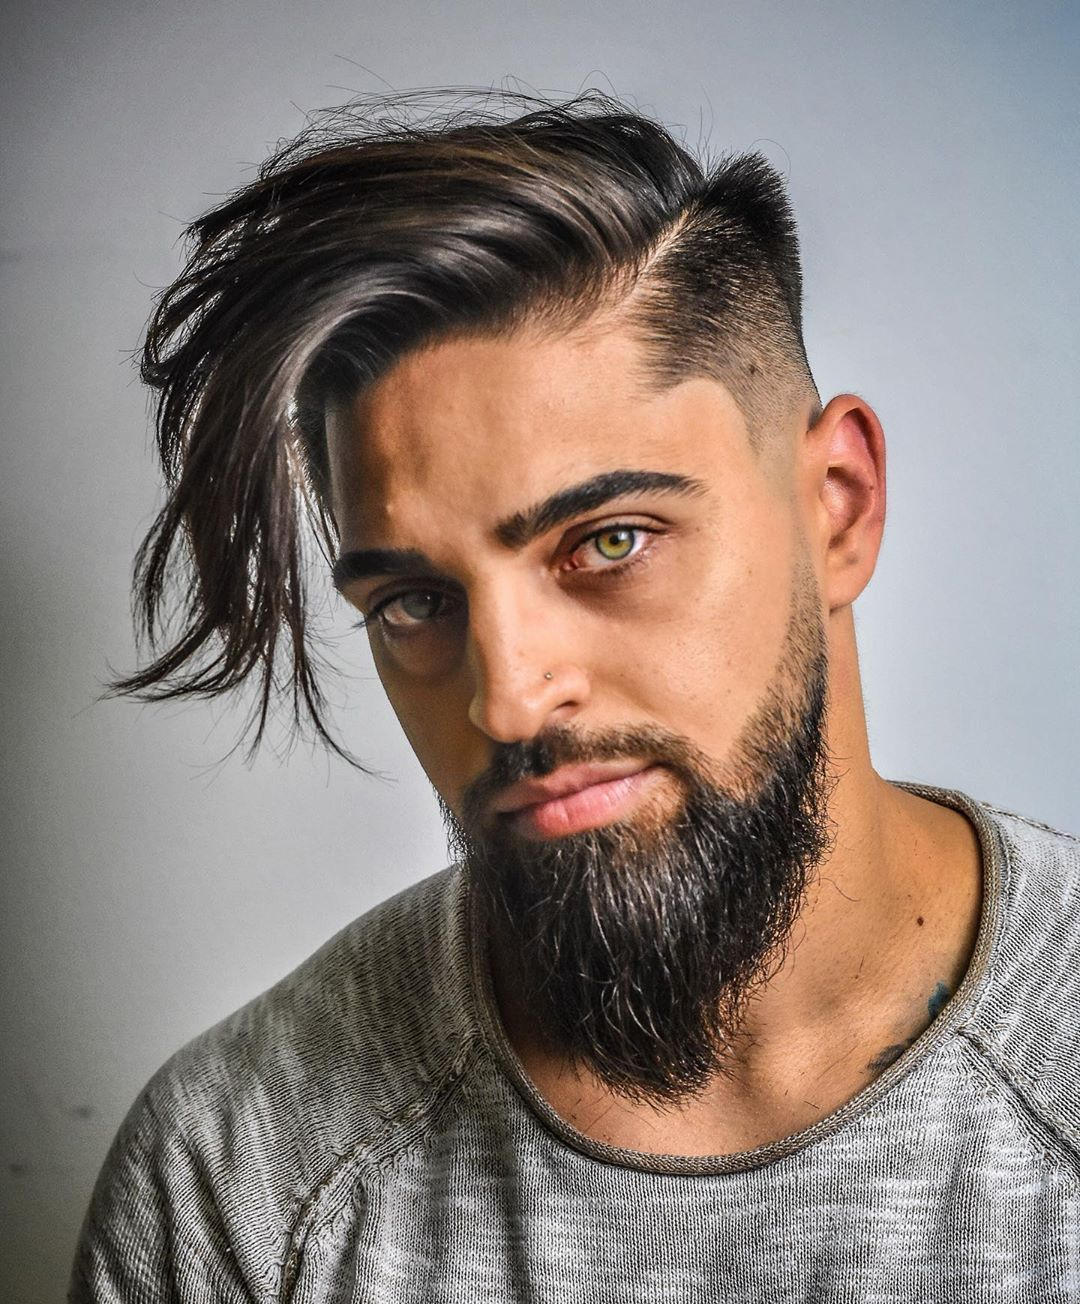 Classic Hairstyles Men Mens Hairstyles Long On Top Stylesrant Coiffure Courte Coiffure Beaute